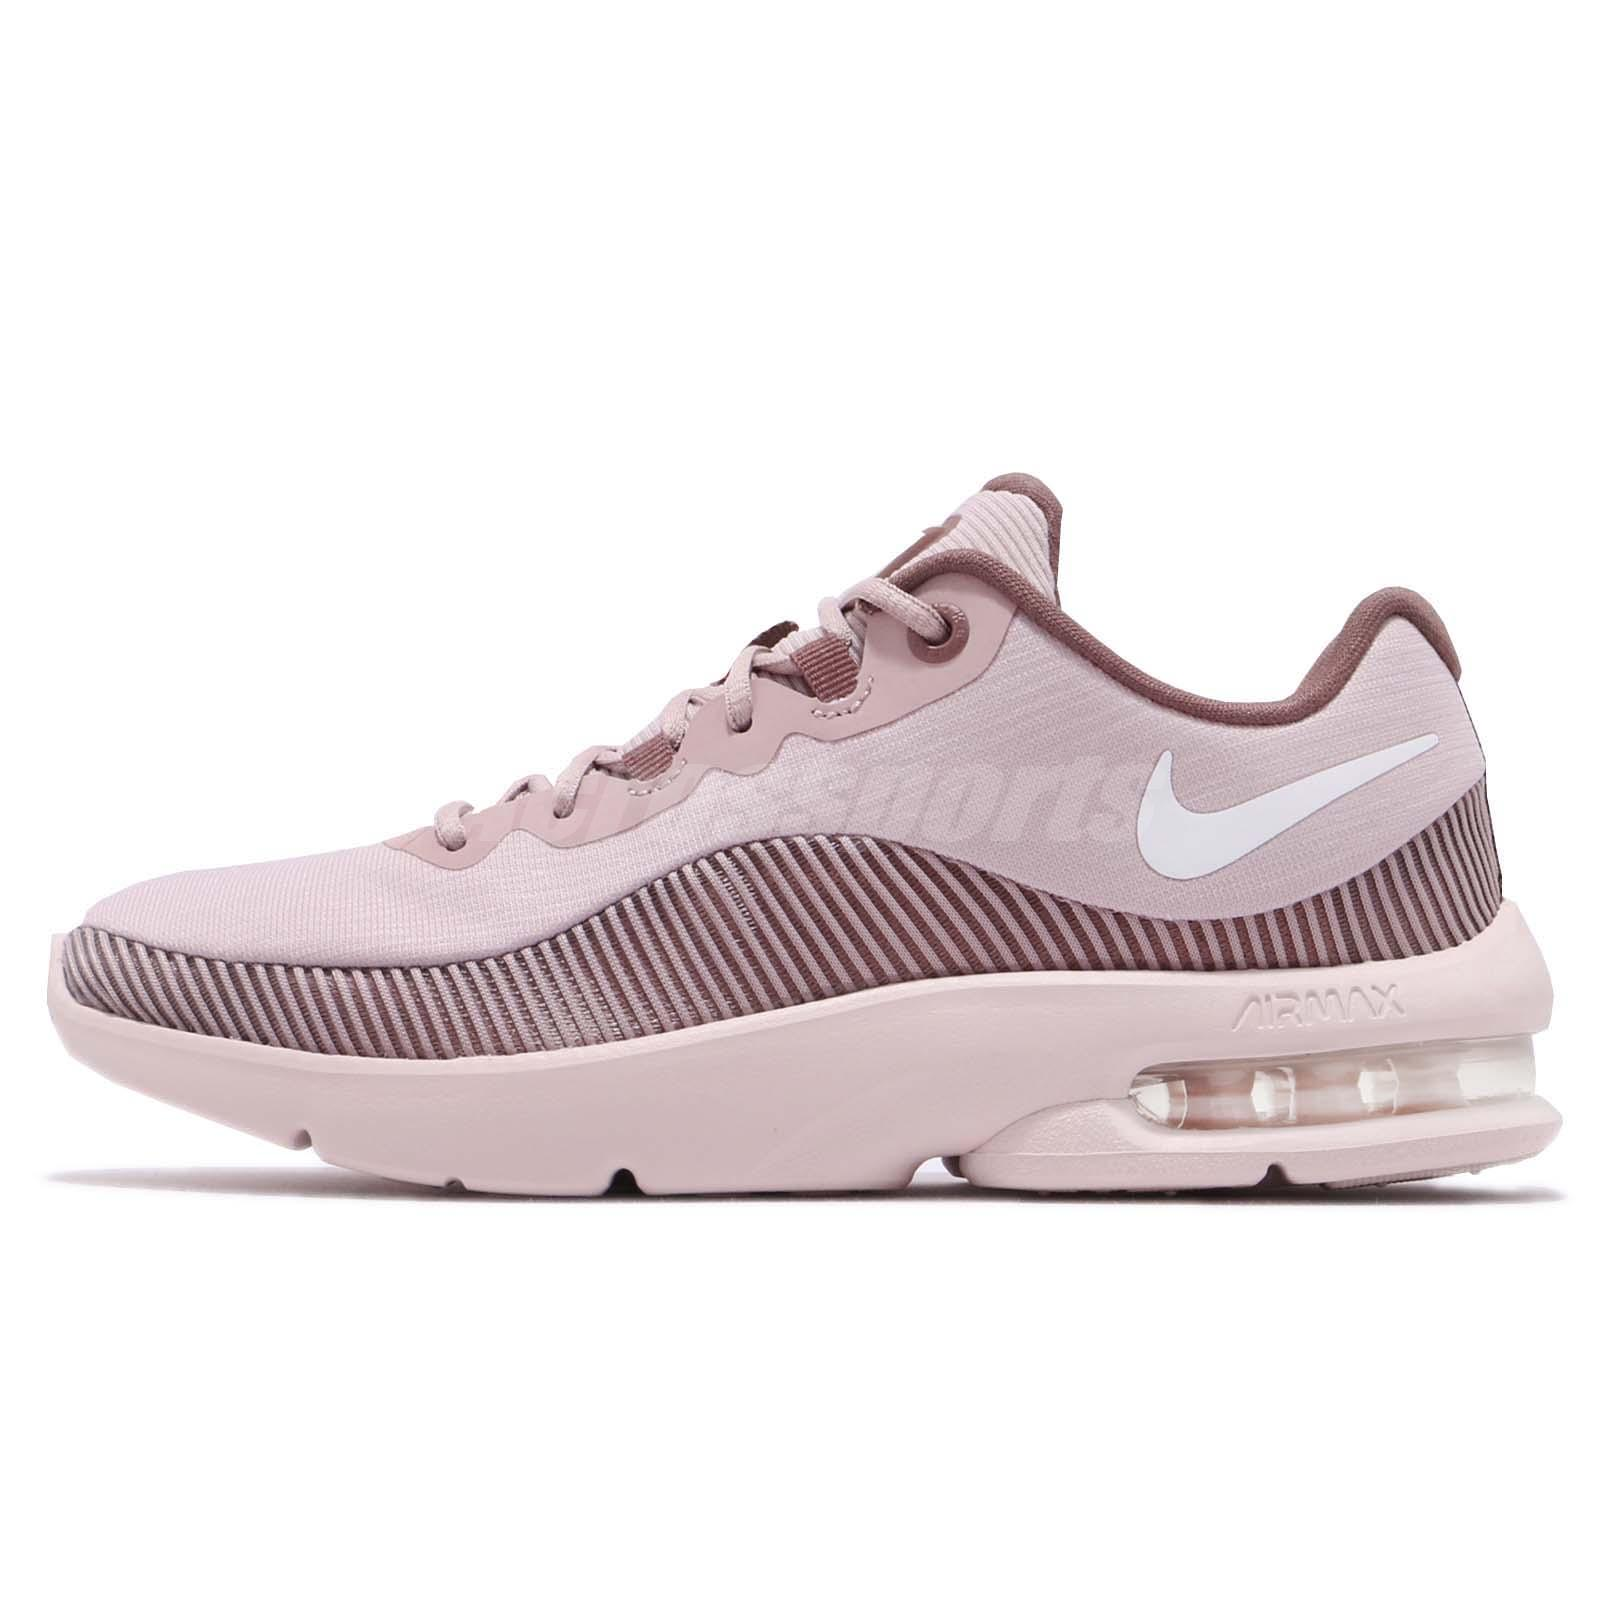 cheap for discount a7a4a f83db Nike Wmns Air Max Advantage 2 II Particle Rose Pink White Women Shoes  AA7407-601